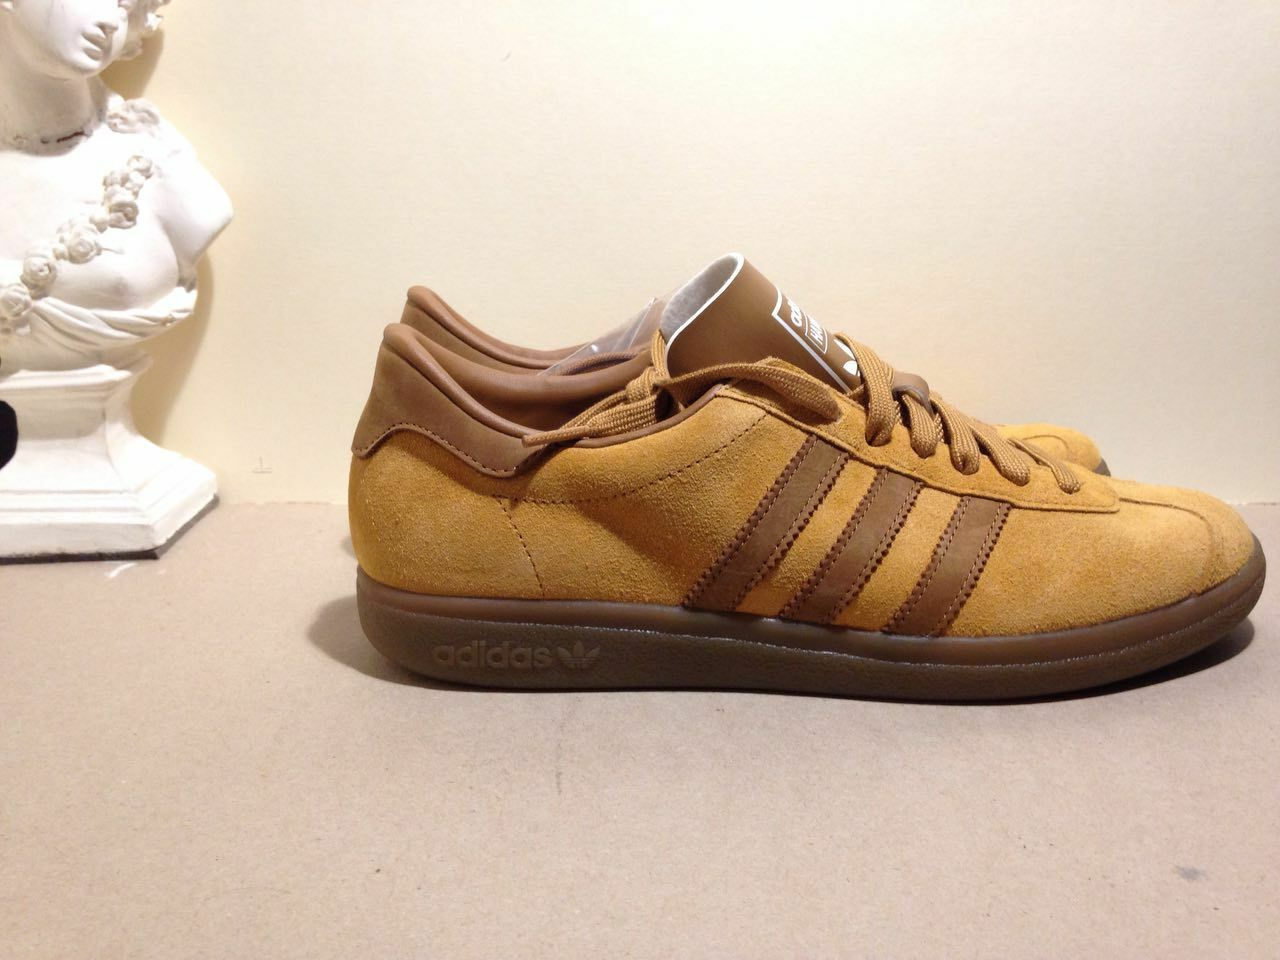 Adidas Originals Hawaii Island SERIE Marrone MESA/Timber M19687